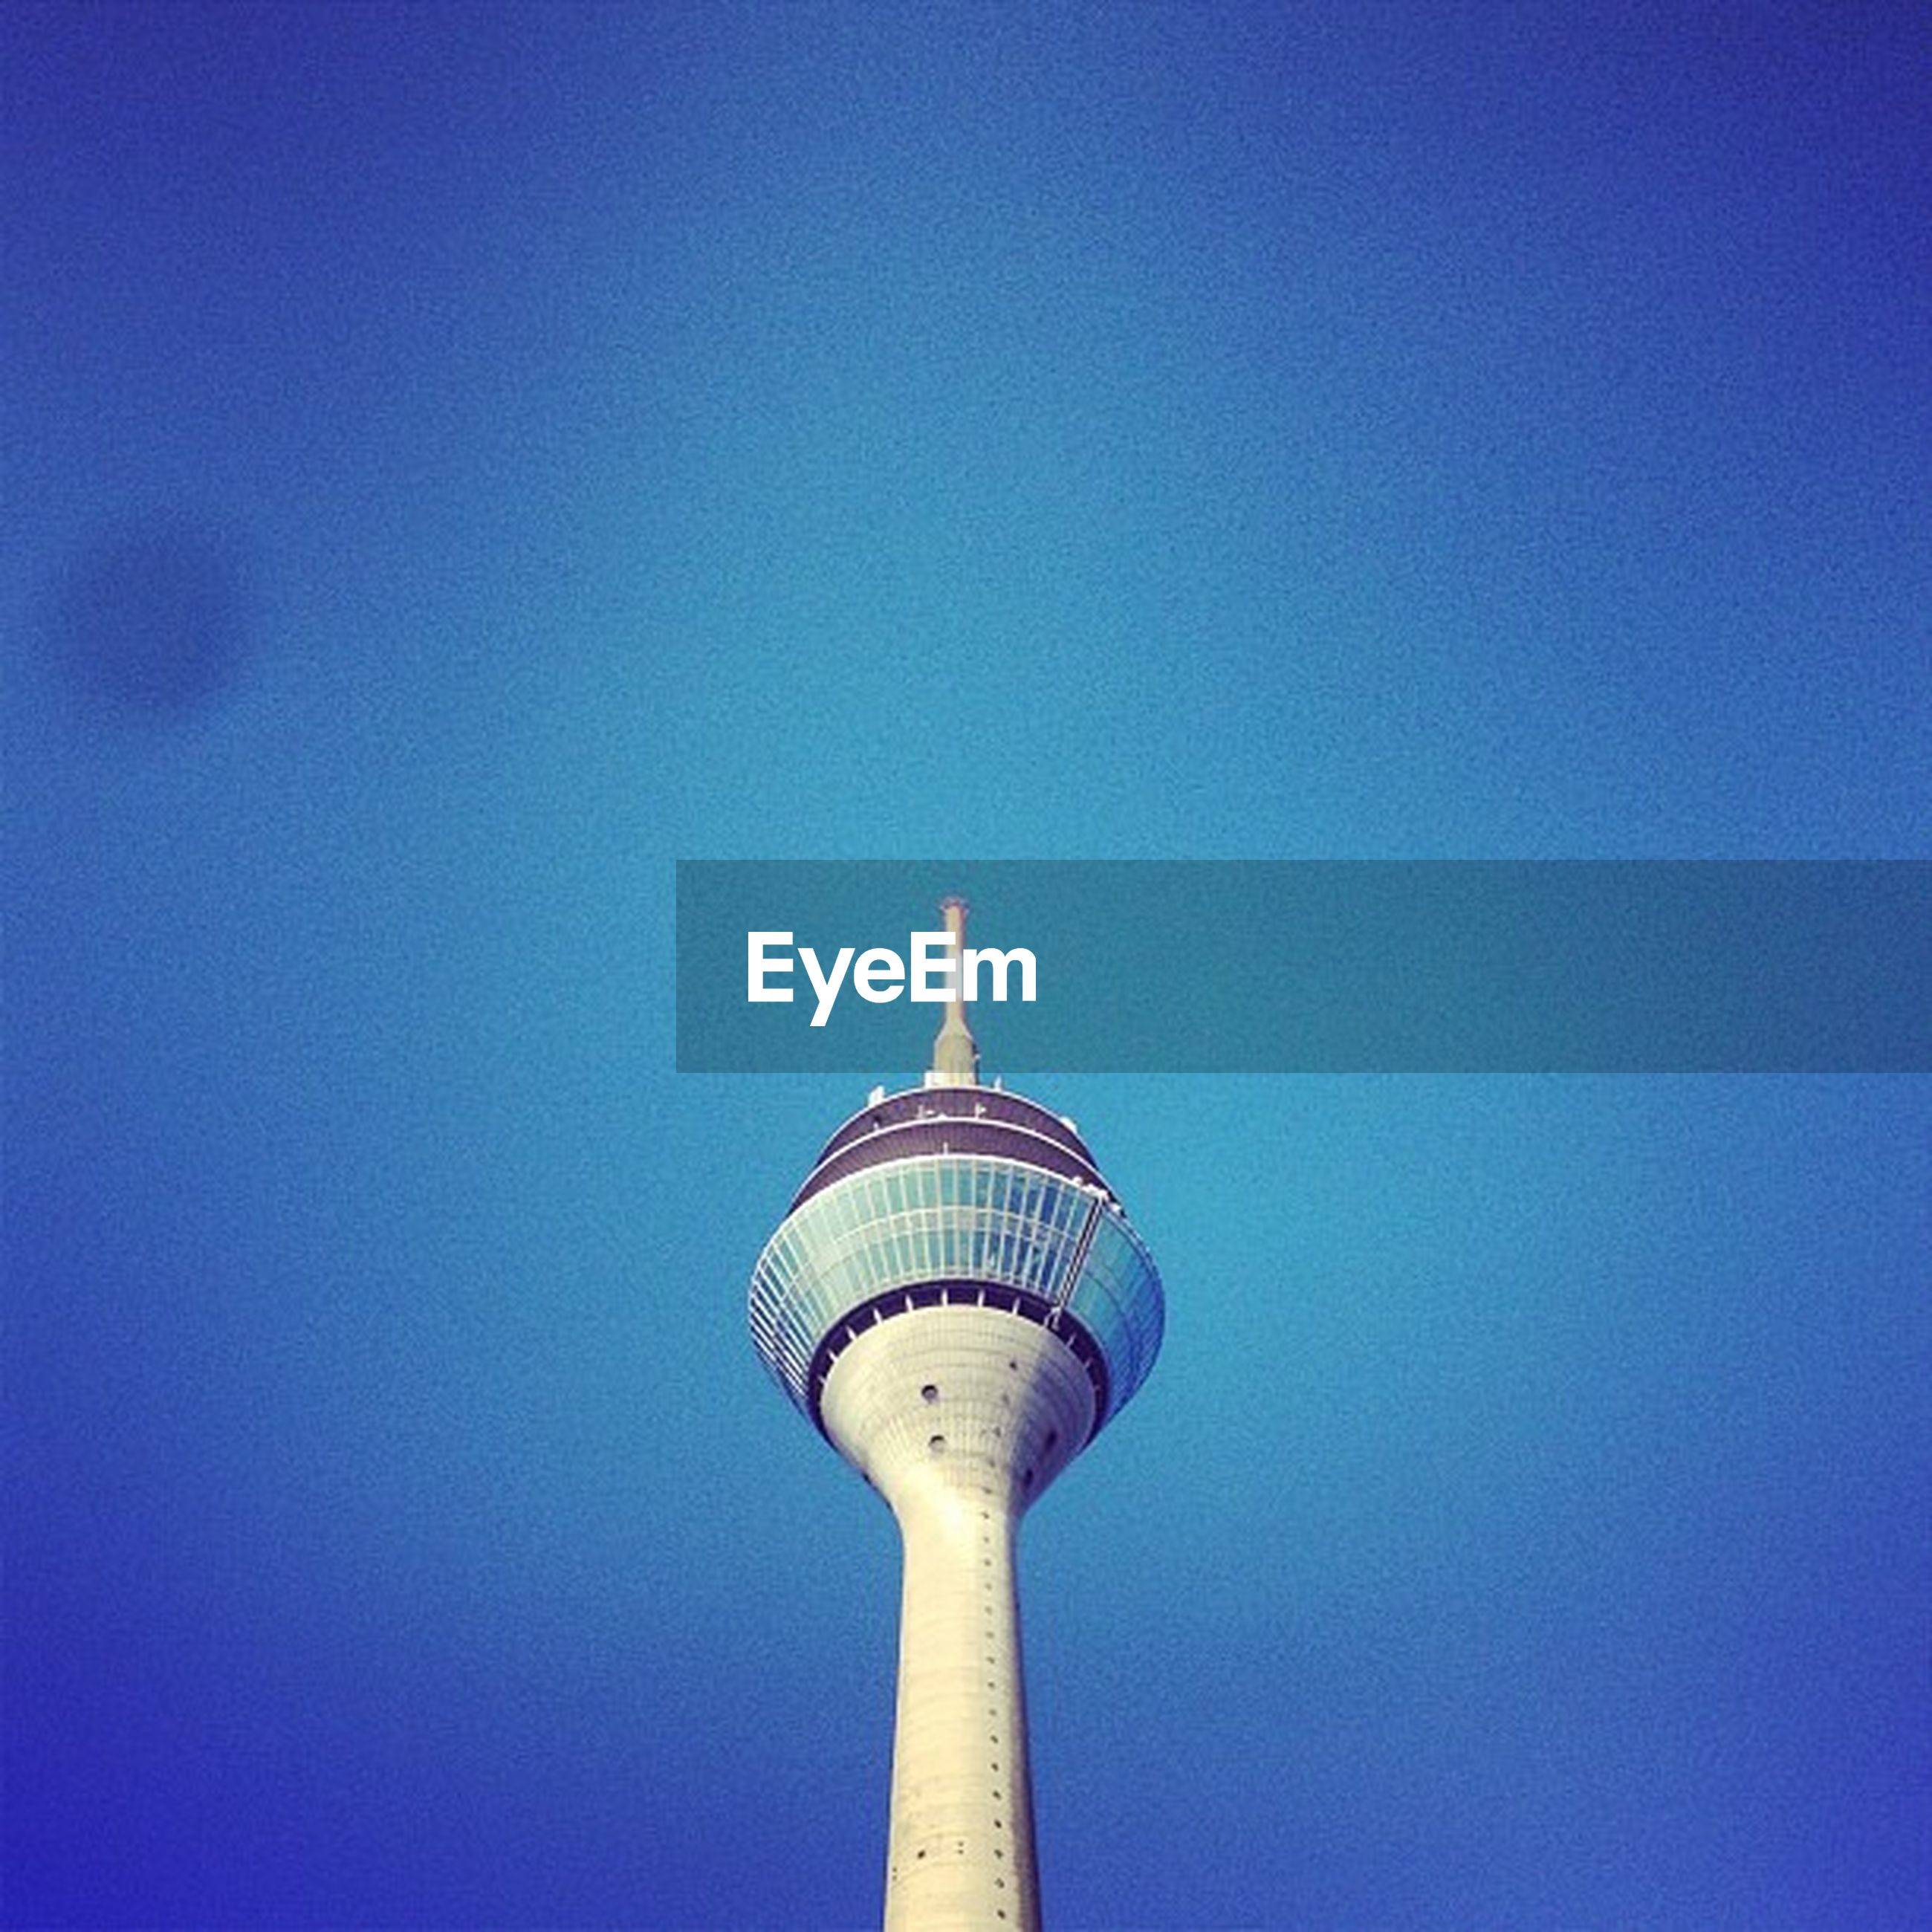 low angle view, tower, architecture, built structure, communications tower, clear sky, blue, tall - high, communication, building exterior, copy space, international landmark, famous place, capital cities, spire, travel destinations, tourism, fernsehturm, travel, television tower